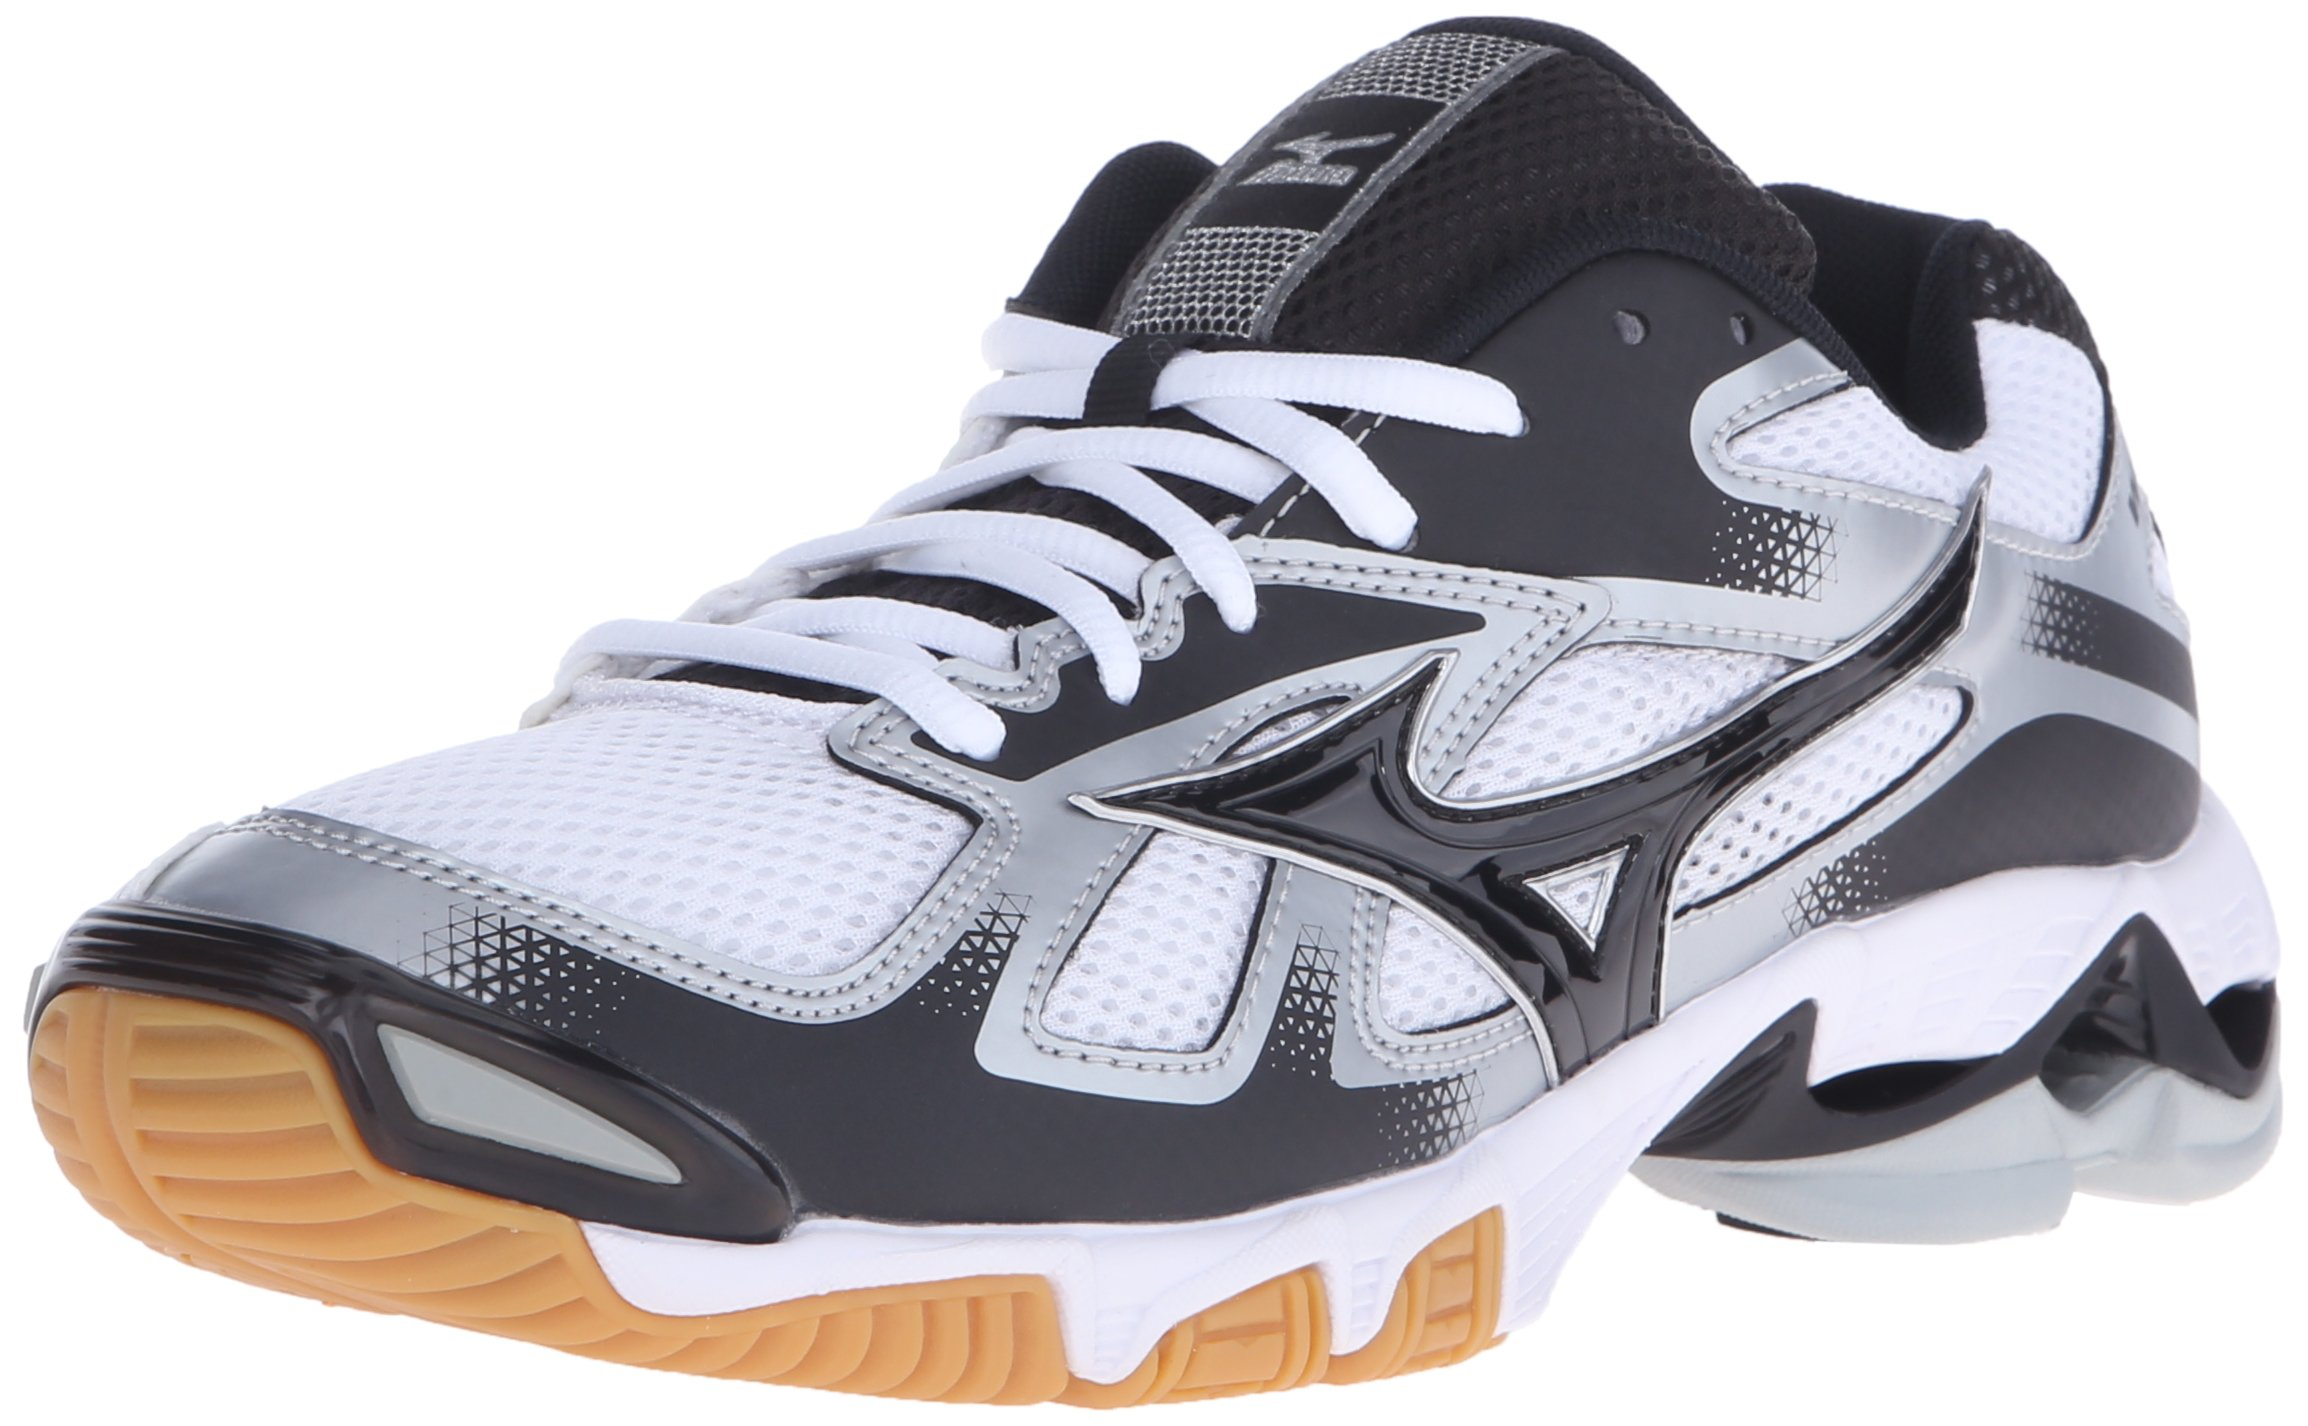 Mizuno Men's Wave Bolt 5 Volleyball Shoe, White/Black, 13 D US